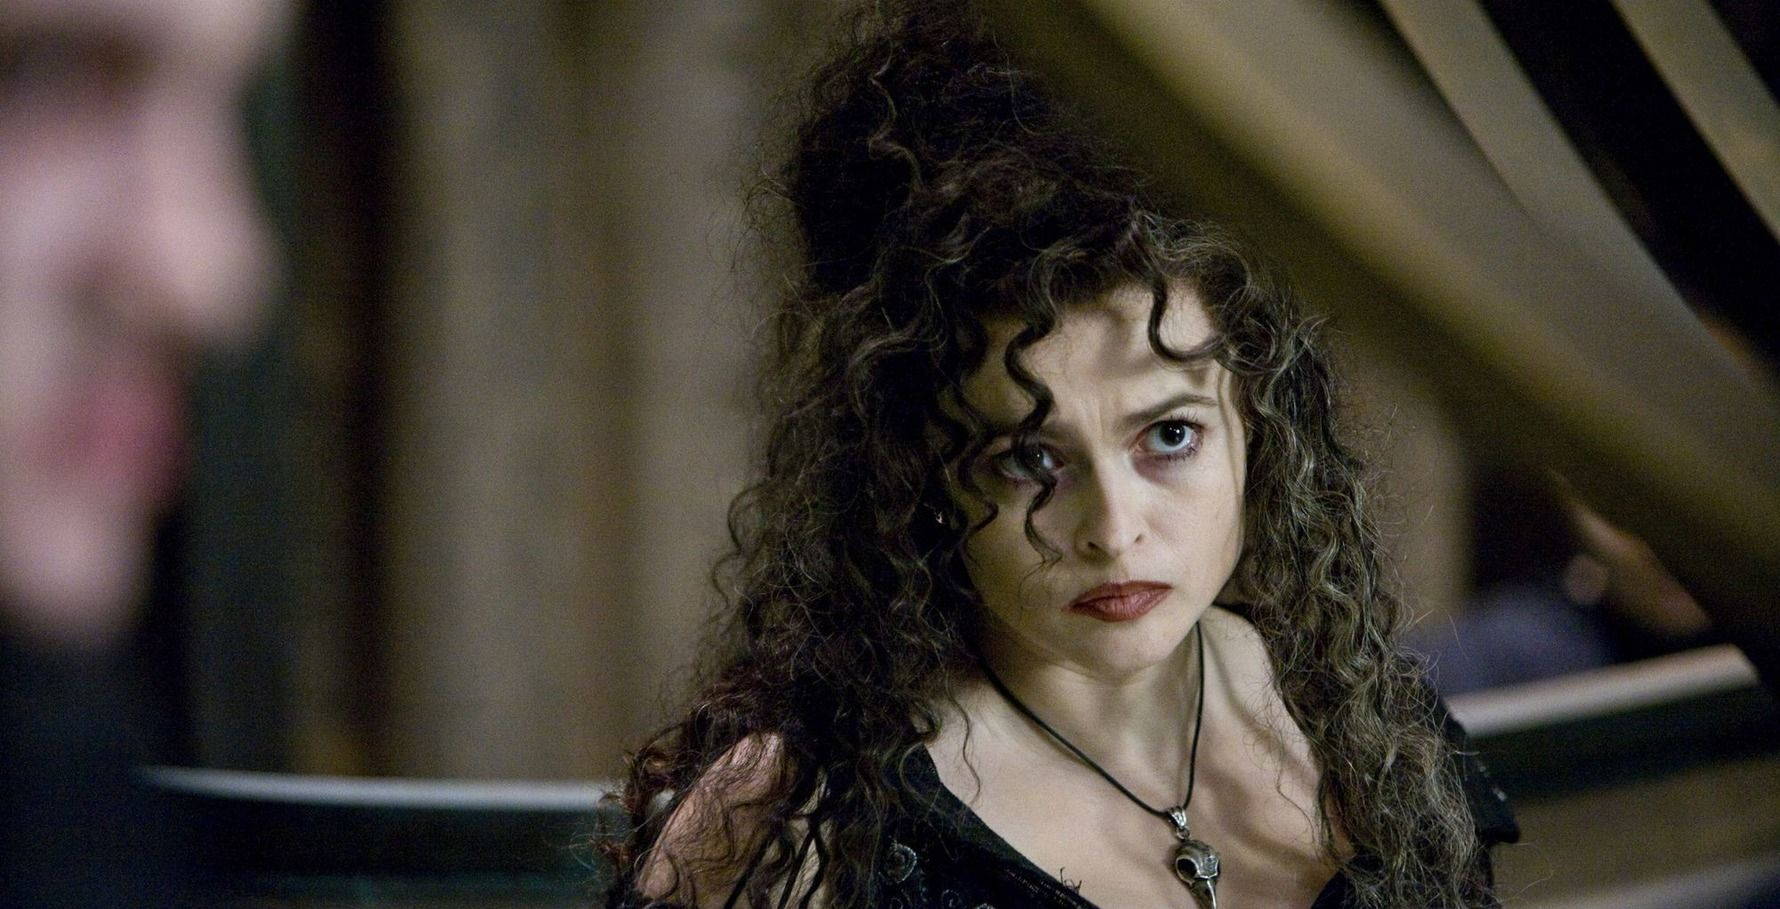 Who Are The Most Powerful Witches In The Harry Potter Universe?